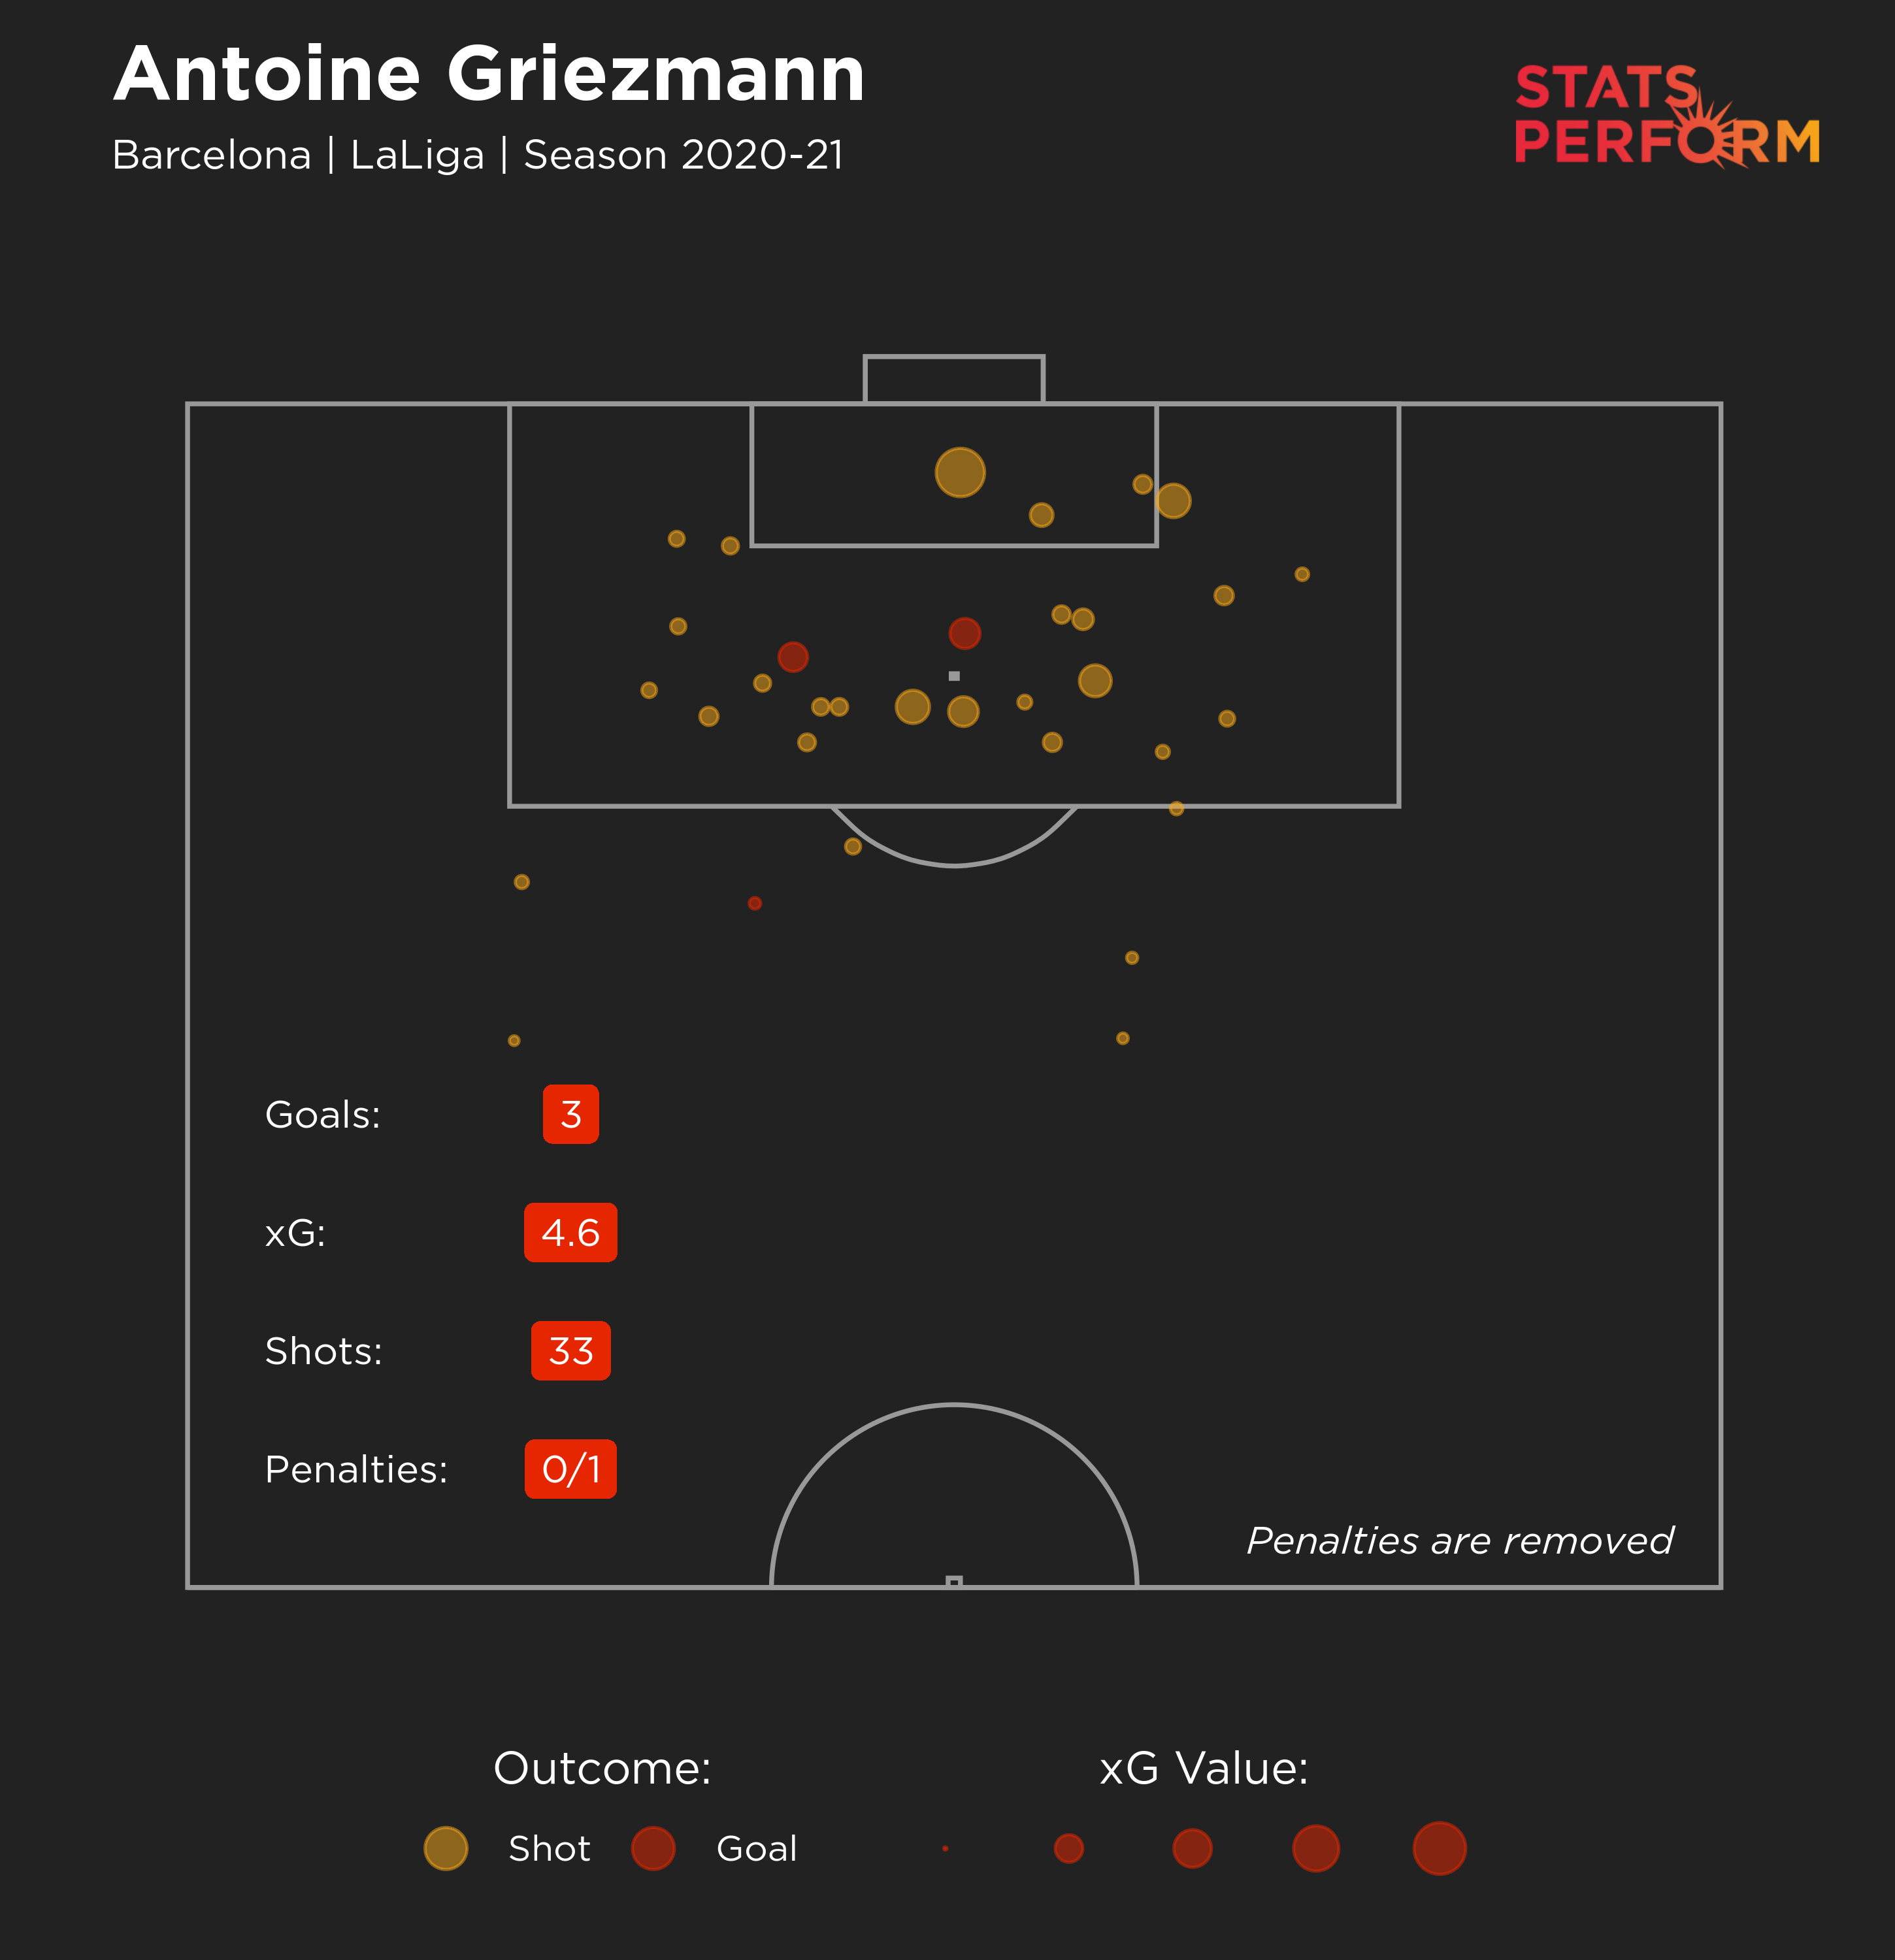 Griezmann's expected goals in LaLiga